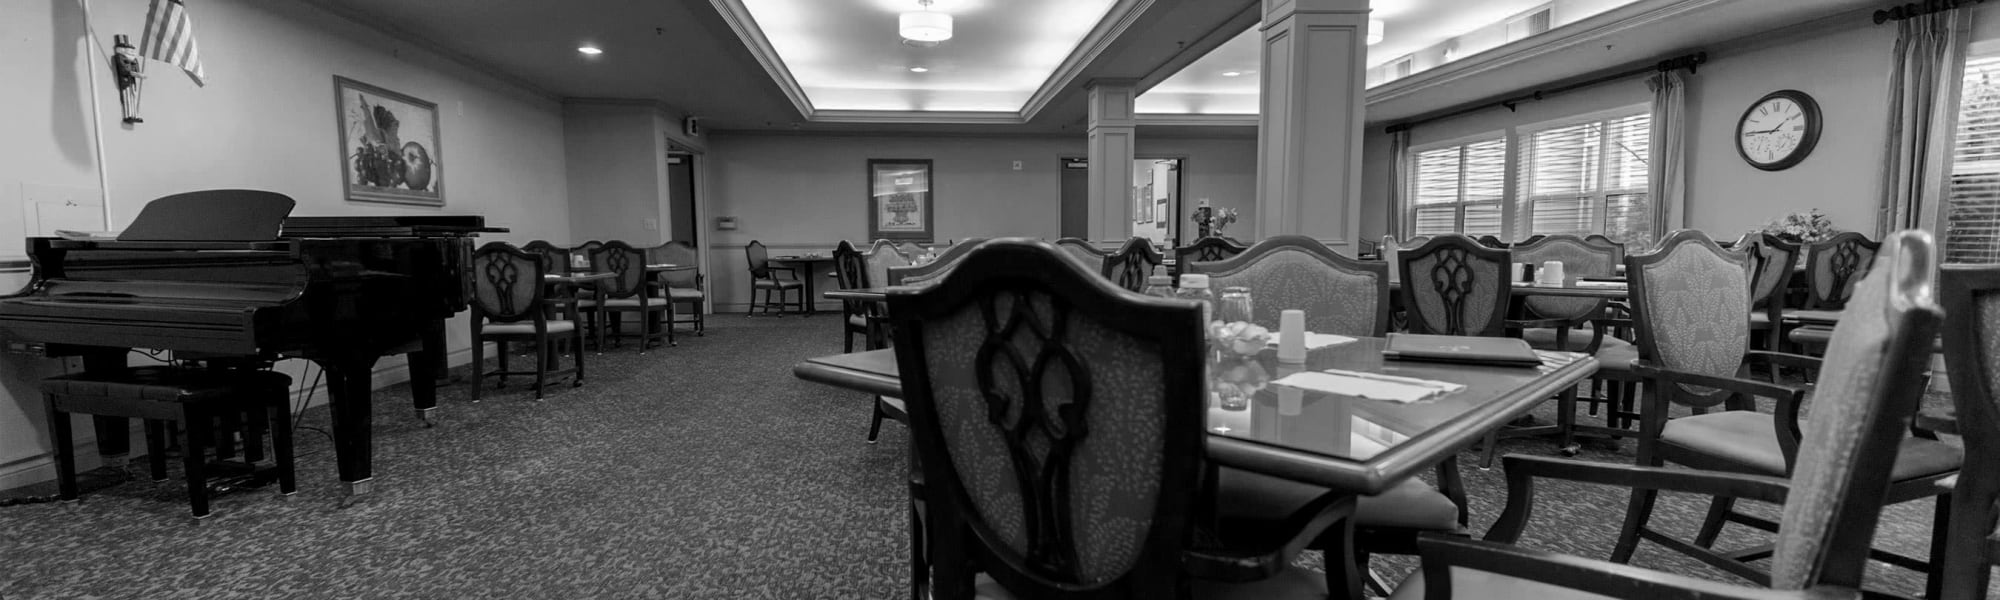 Services and amenities at Kenmore Senior Living in Kenmore, Washington.